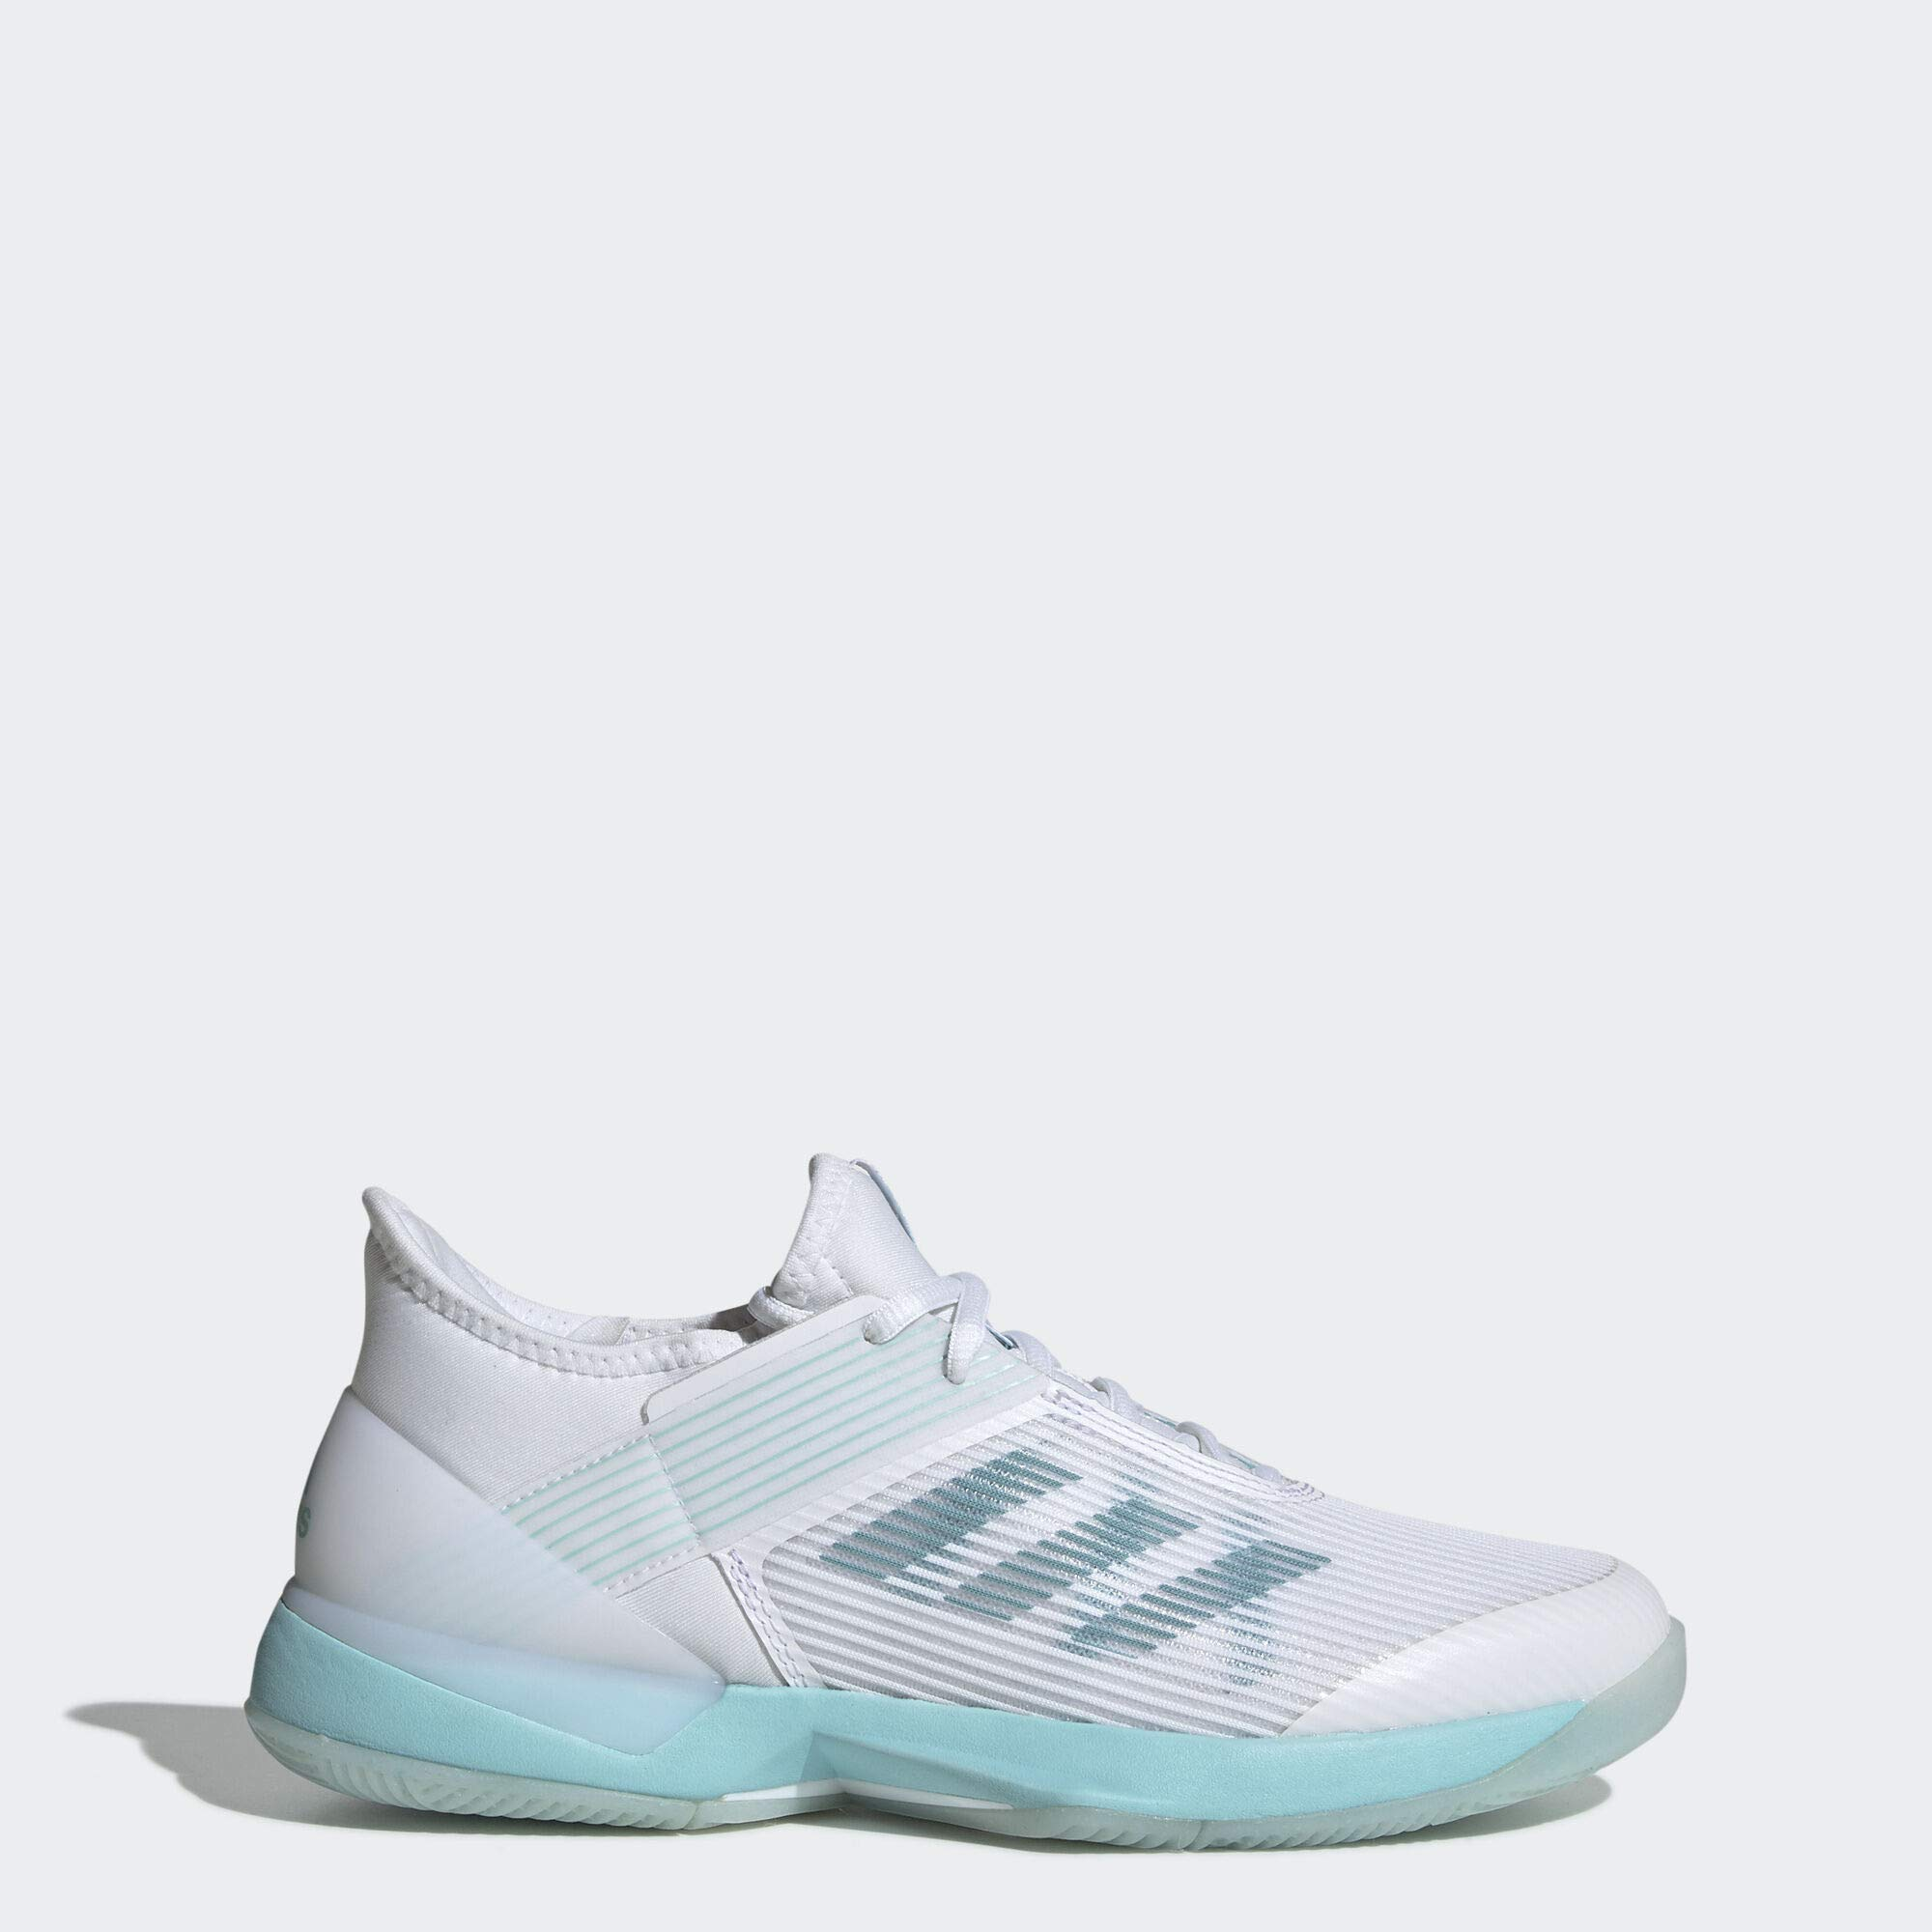 adidas Women's Adizero Ubersonic 3, Blue Spirit White, 9 M US by adidas